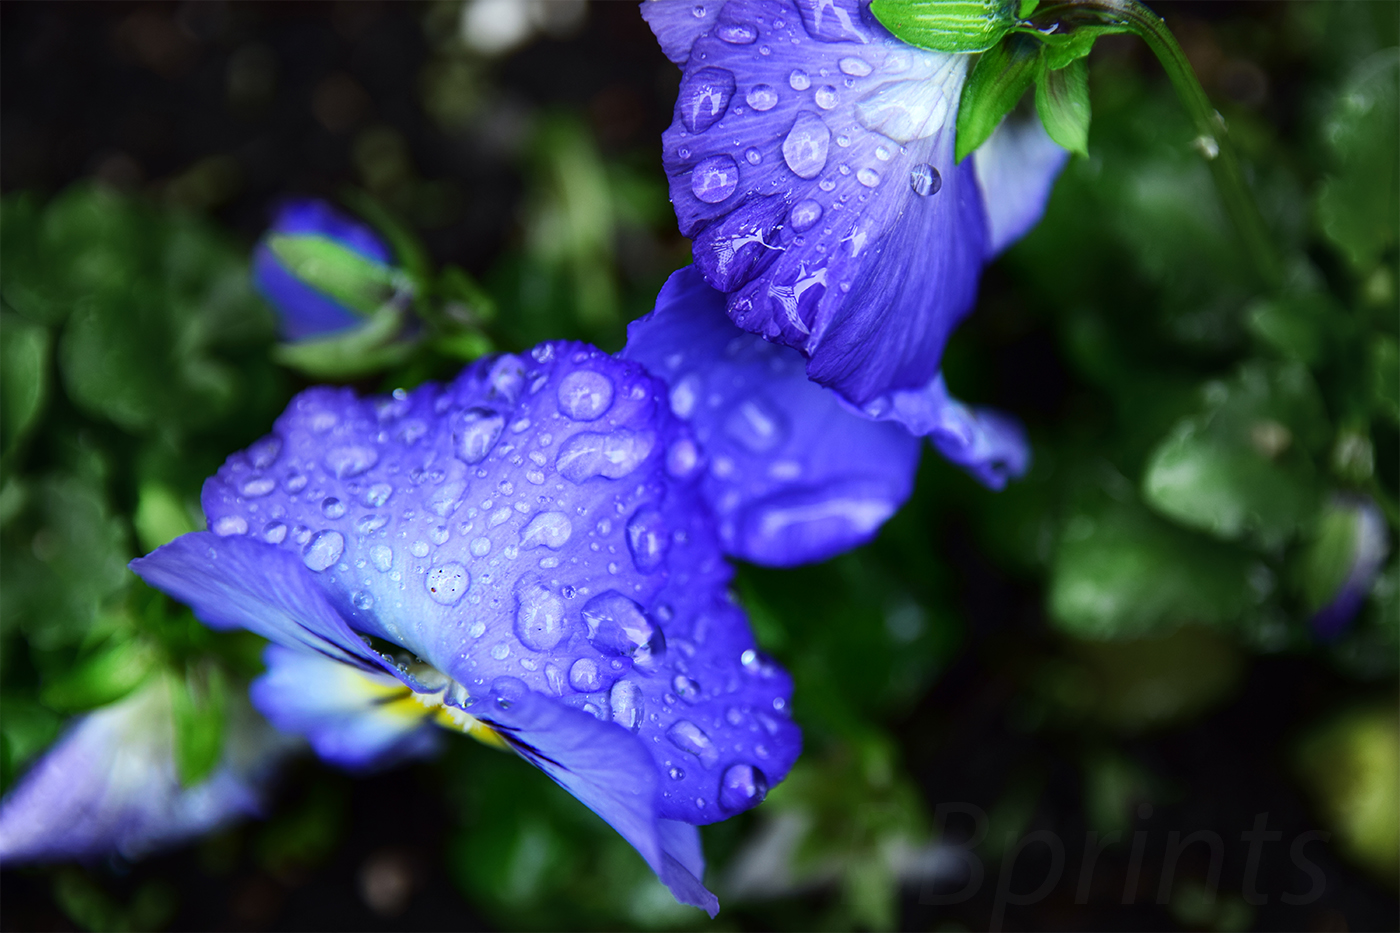 Nature photo, floral photo, spring photo, pansies photo example image 1